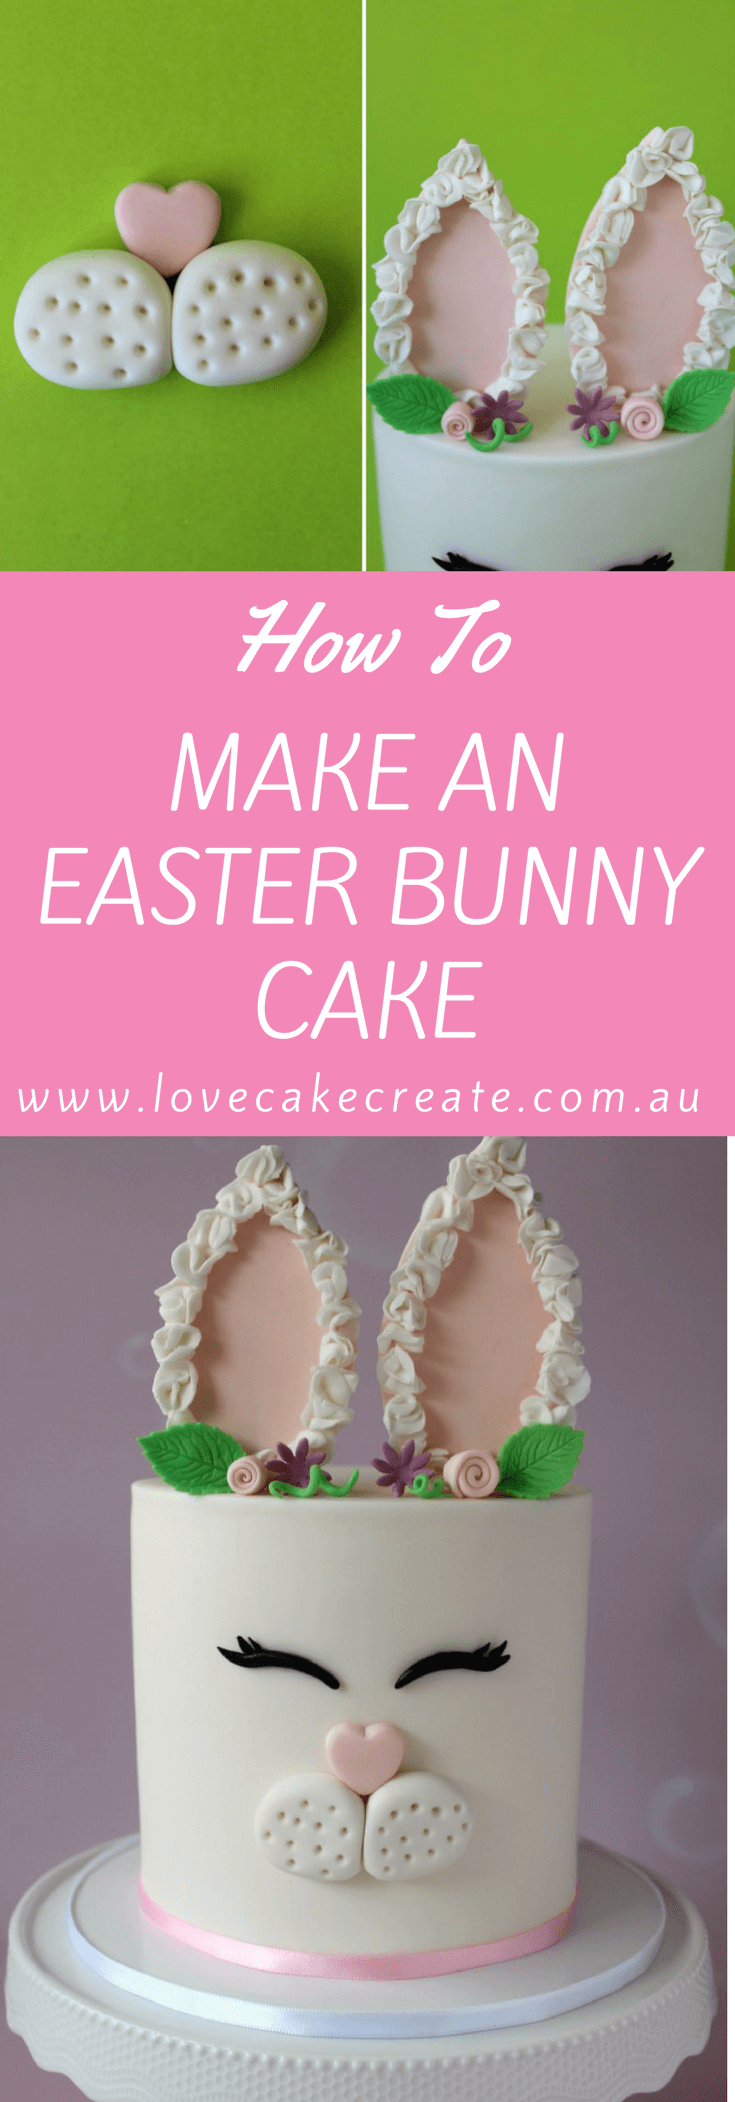 How to make an Easter Bunny Cake - by Love Cake Create